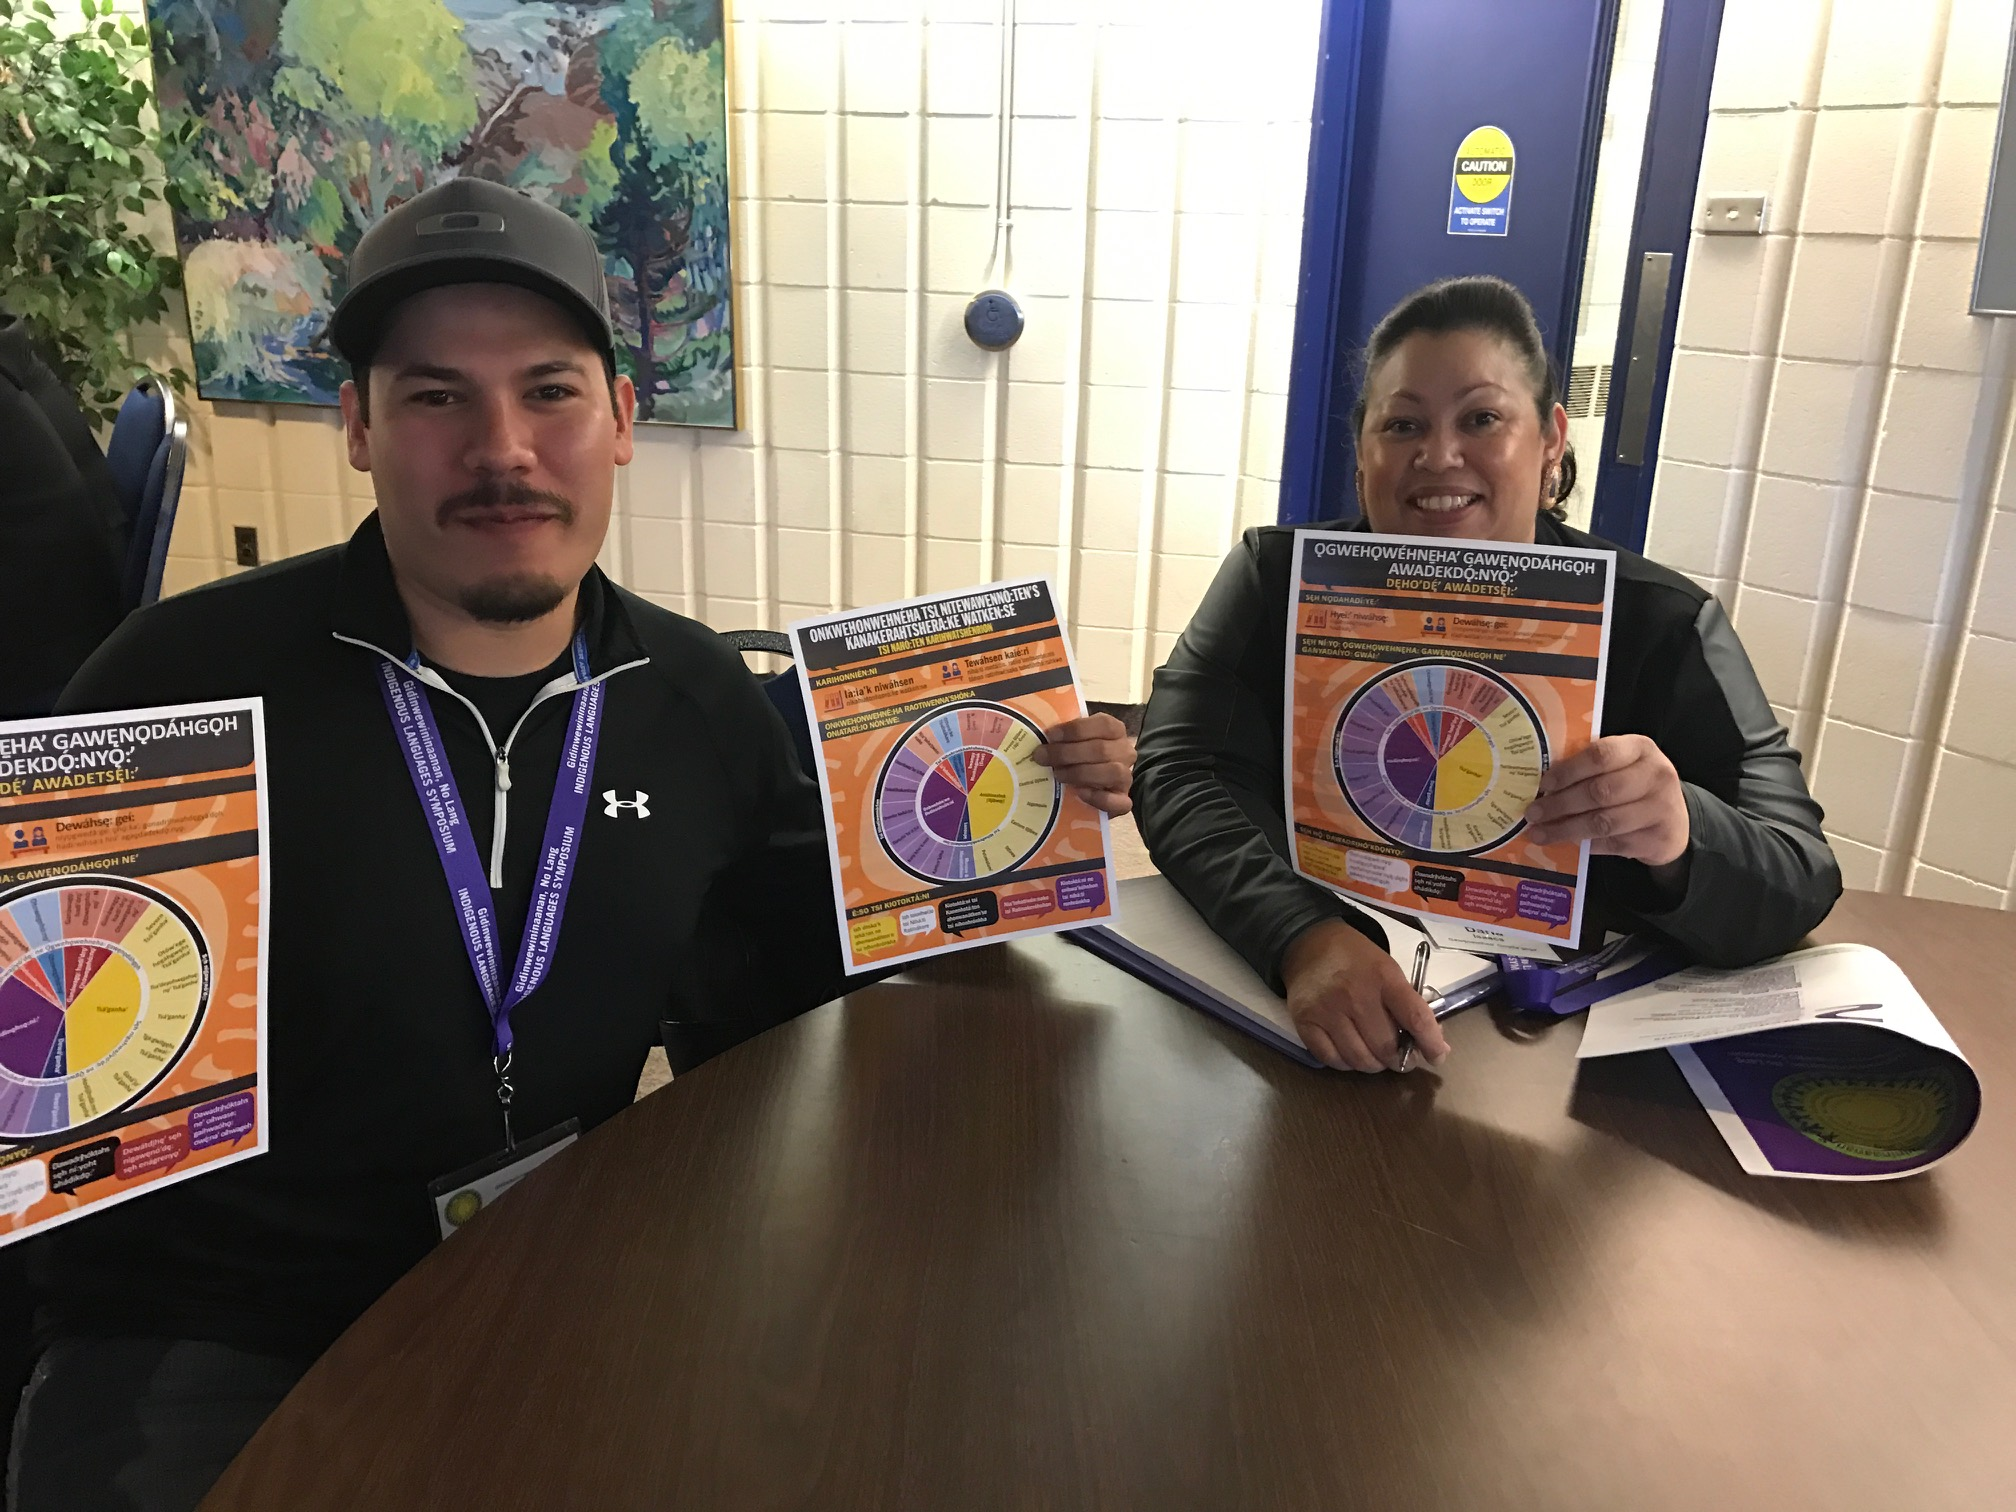 Attending the Indigenous Languages Symposium in Thunder Bay, ON: May 29 - June 1, 2017   Pictured: Ely Longboat, Program Manager and Instructor and Darla Henry, Co-Instructor and Program Admin